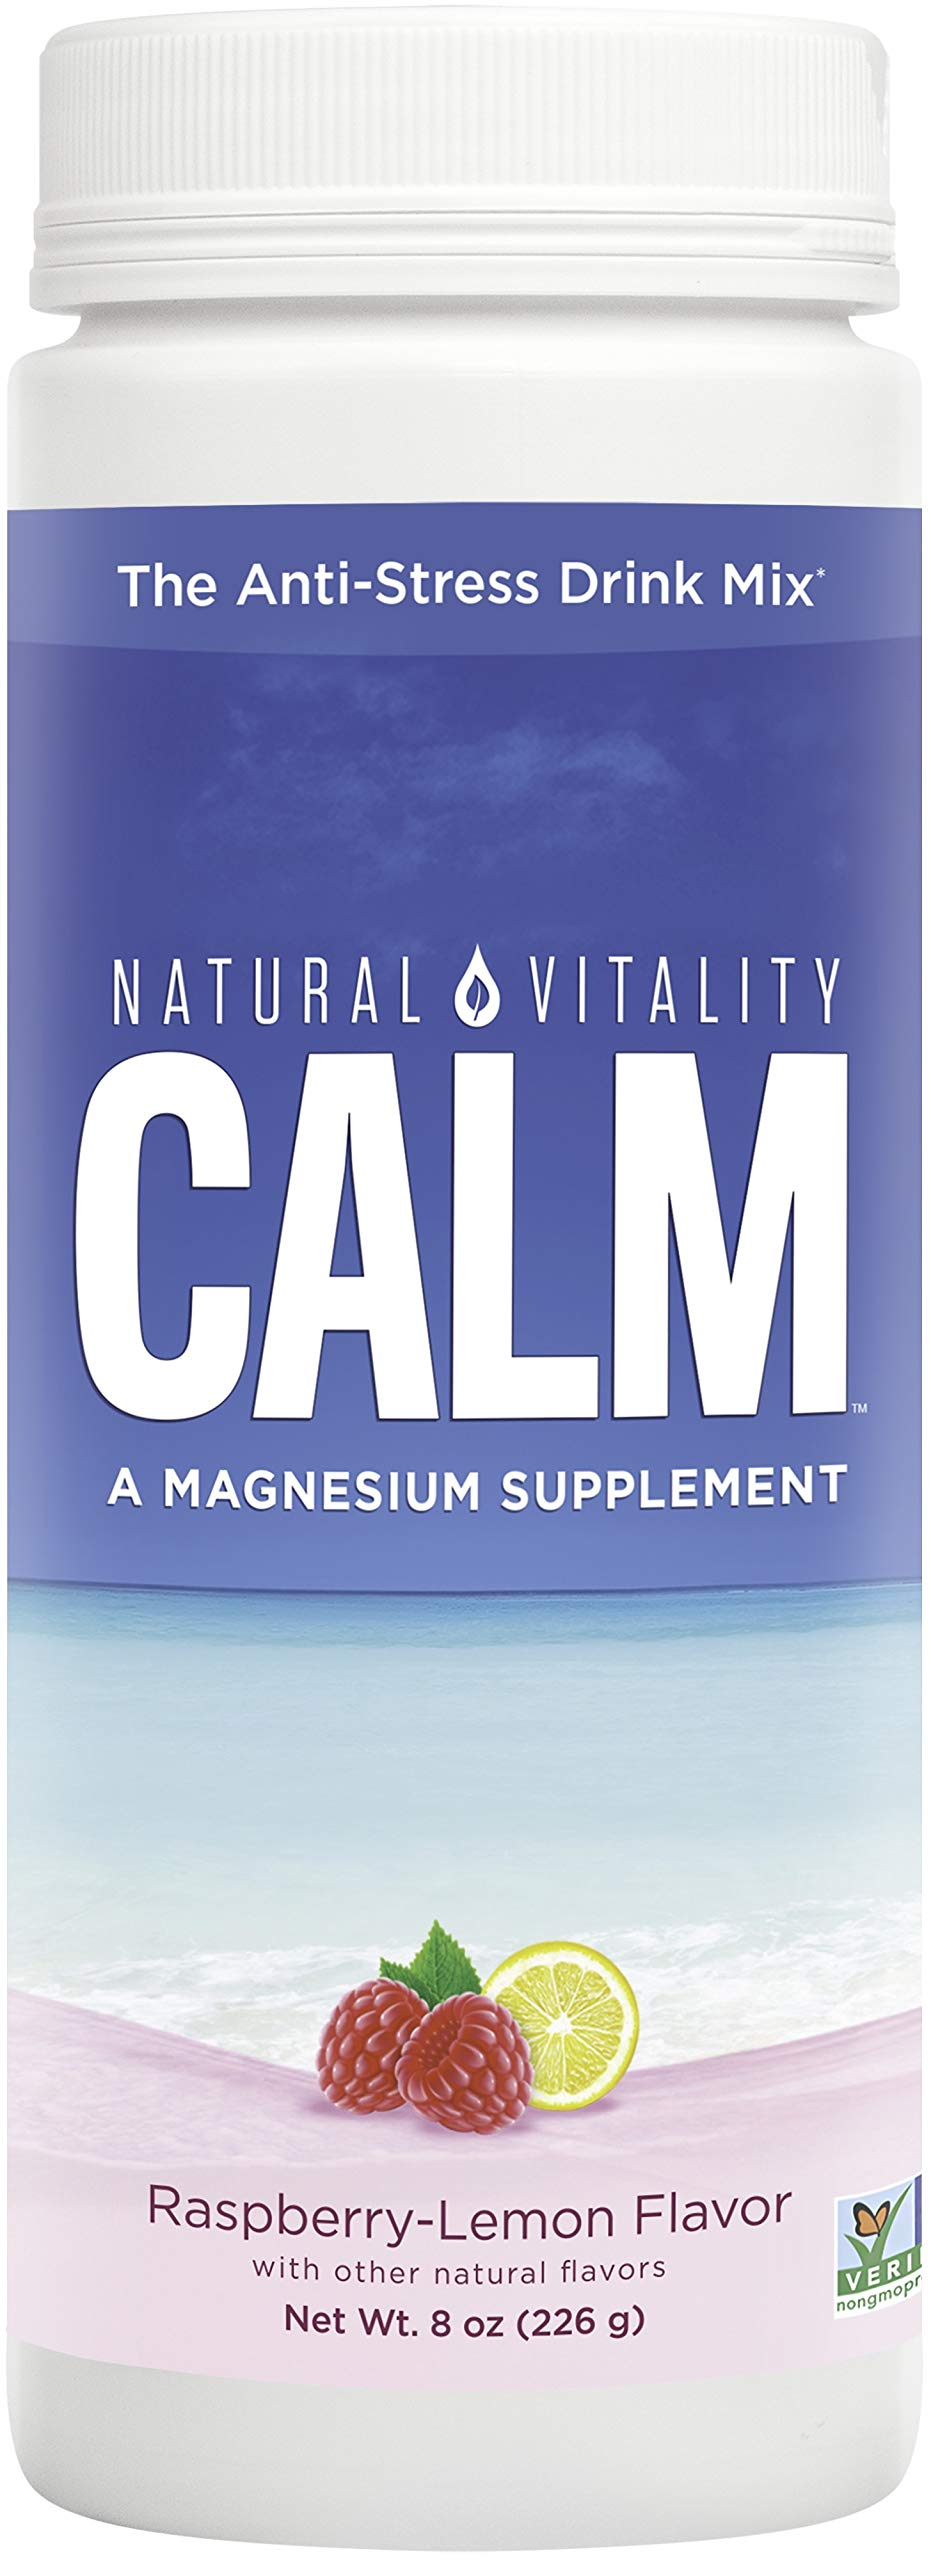 Natural Vitality Calm, Magnesium Supplement, Anti-Stress Drink Mix Powder, Original, Raspberry Lemon - 8 Ounce (Packaging May Vary)